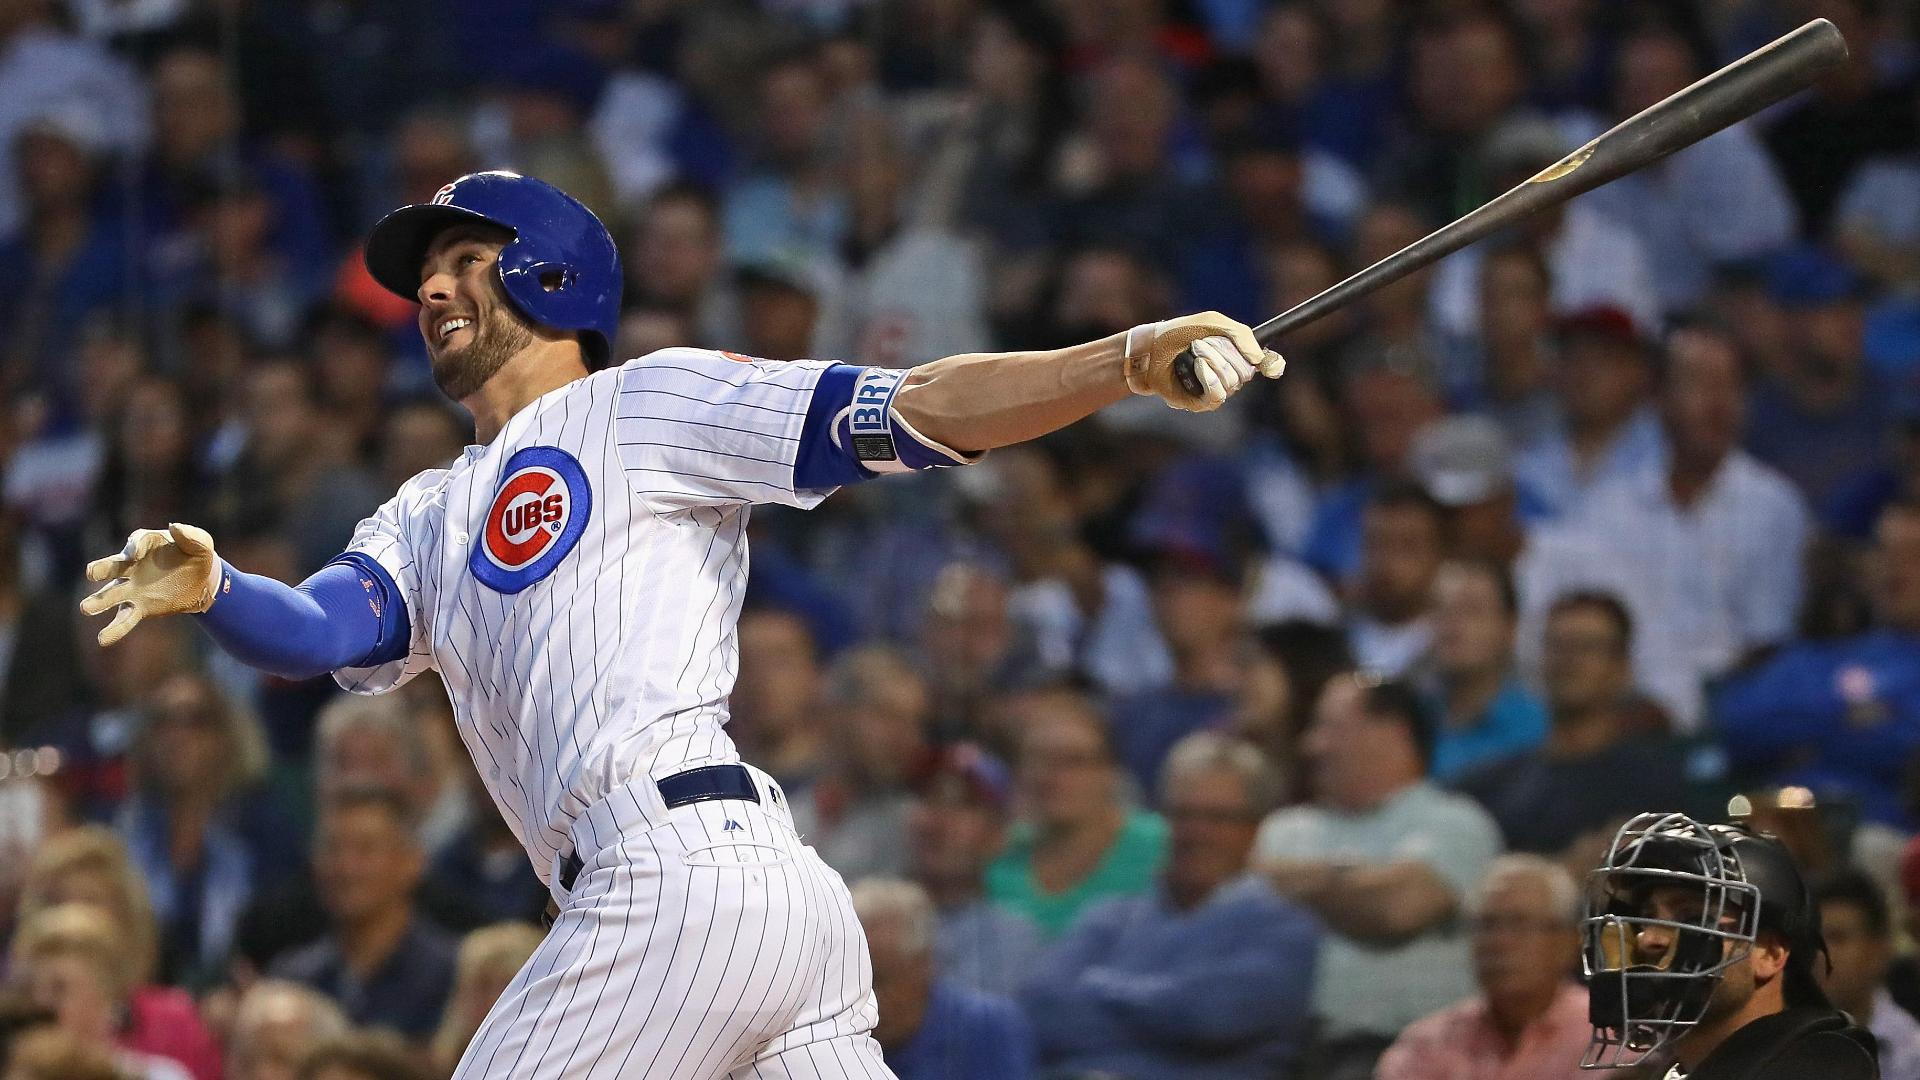 Bryant's 36th HR of season gives Cubs early lead